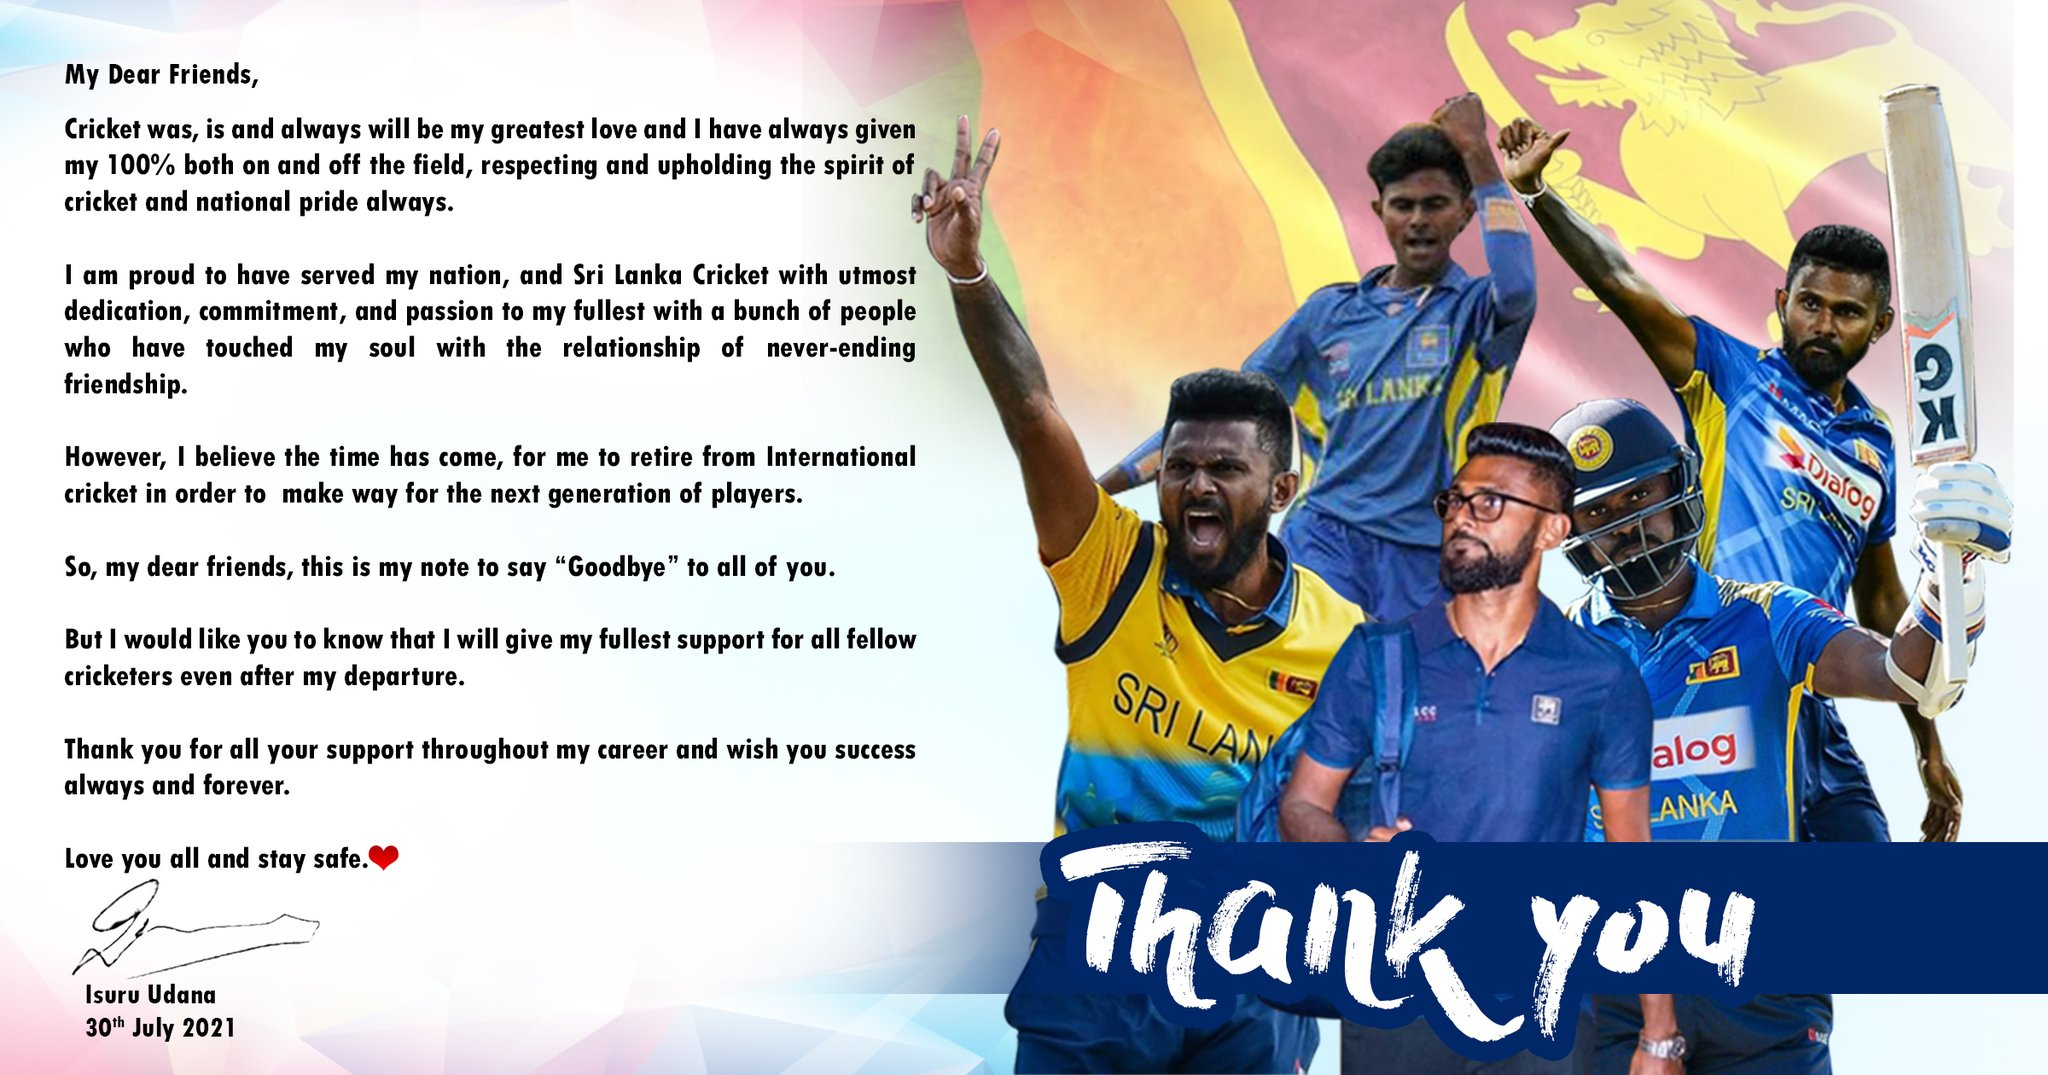 Isuru Udana's message to Cricket fans : Explains why he retired